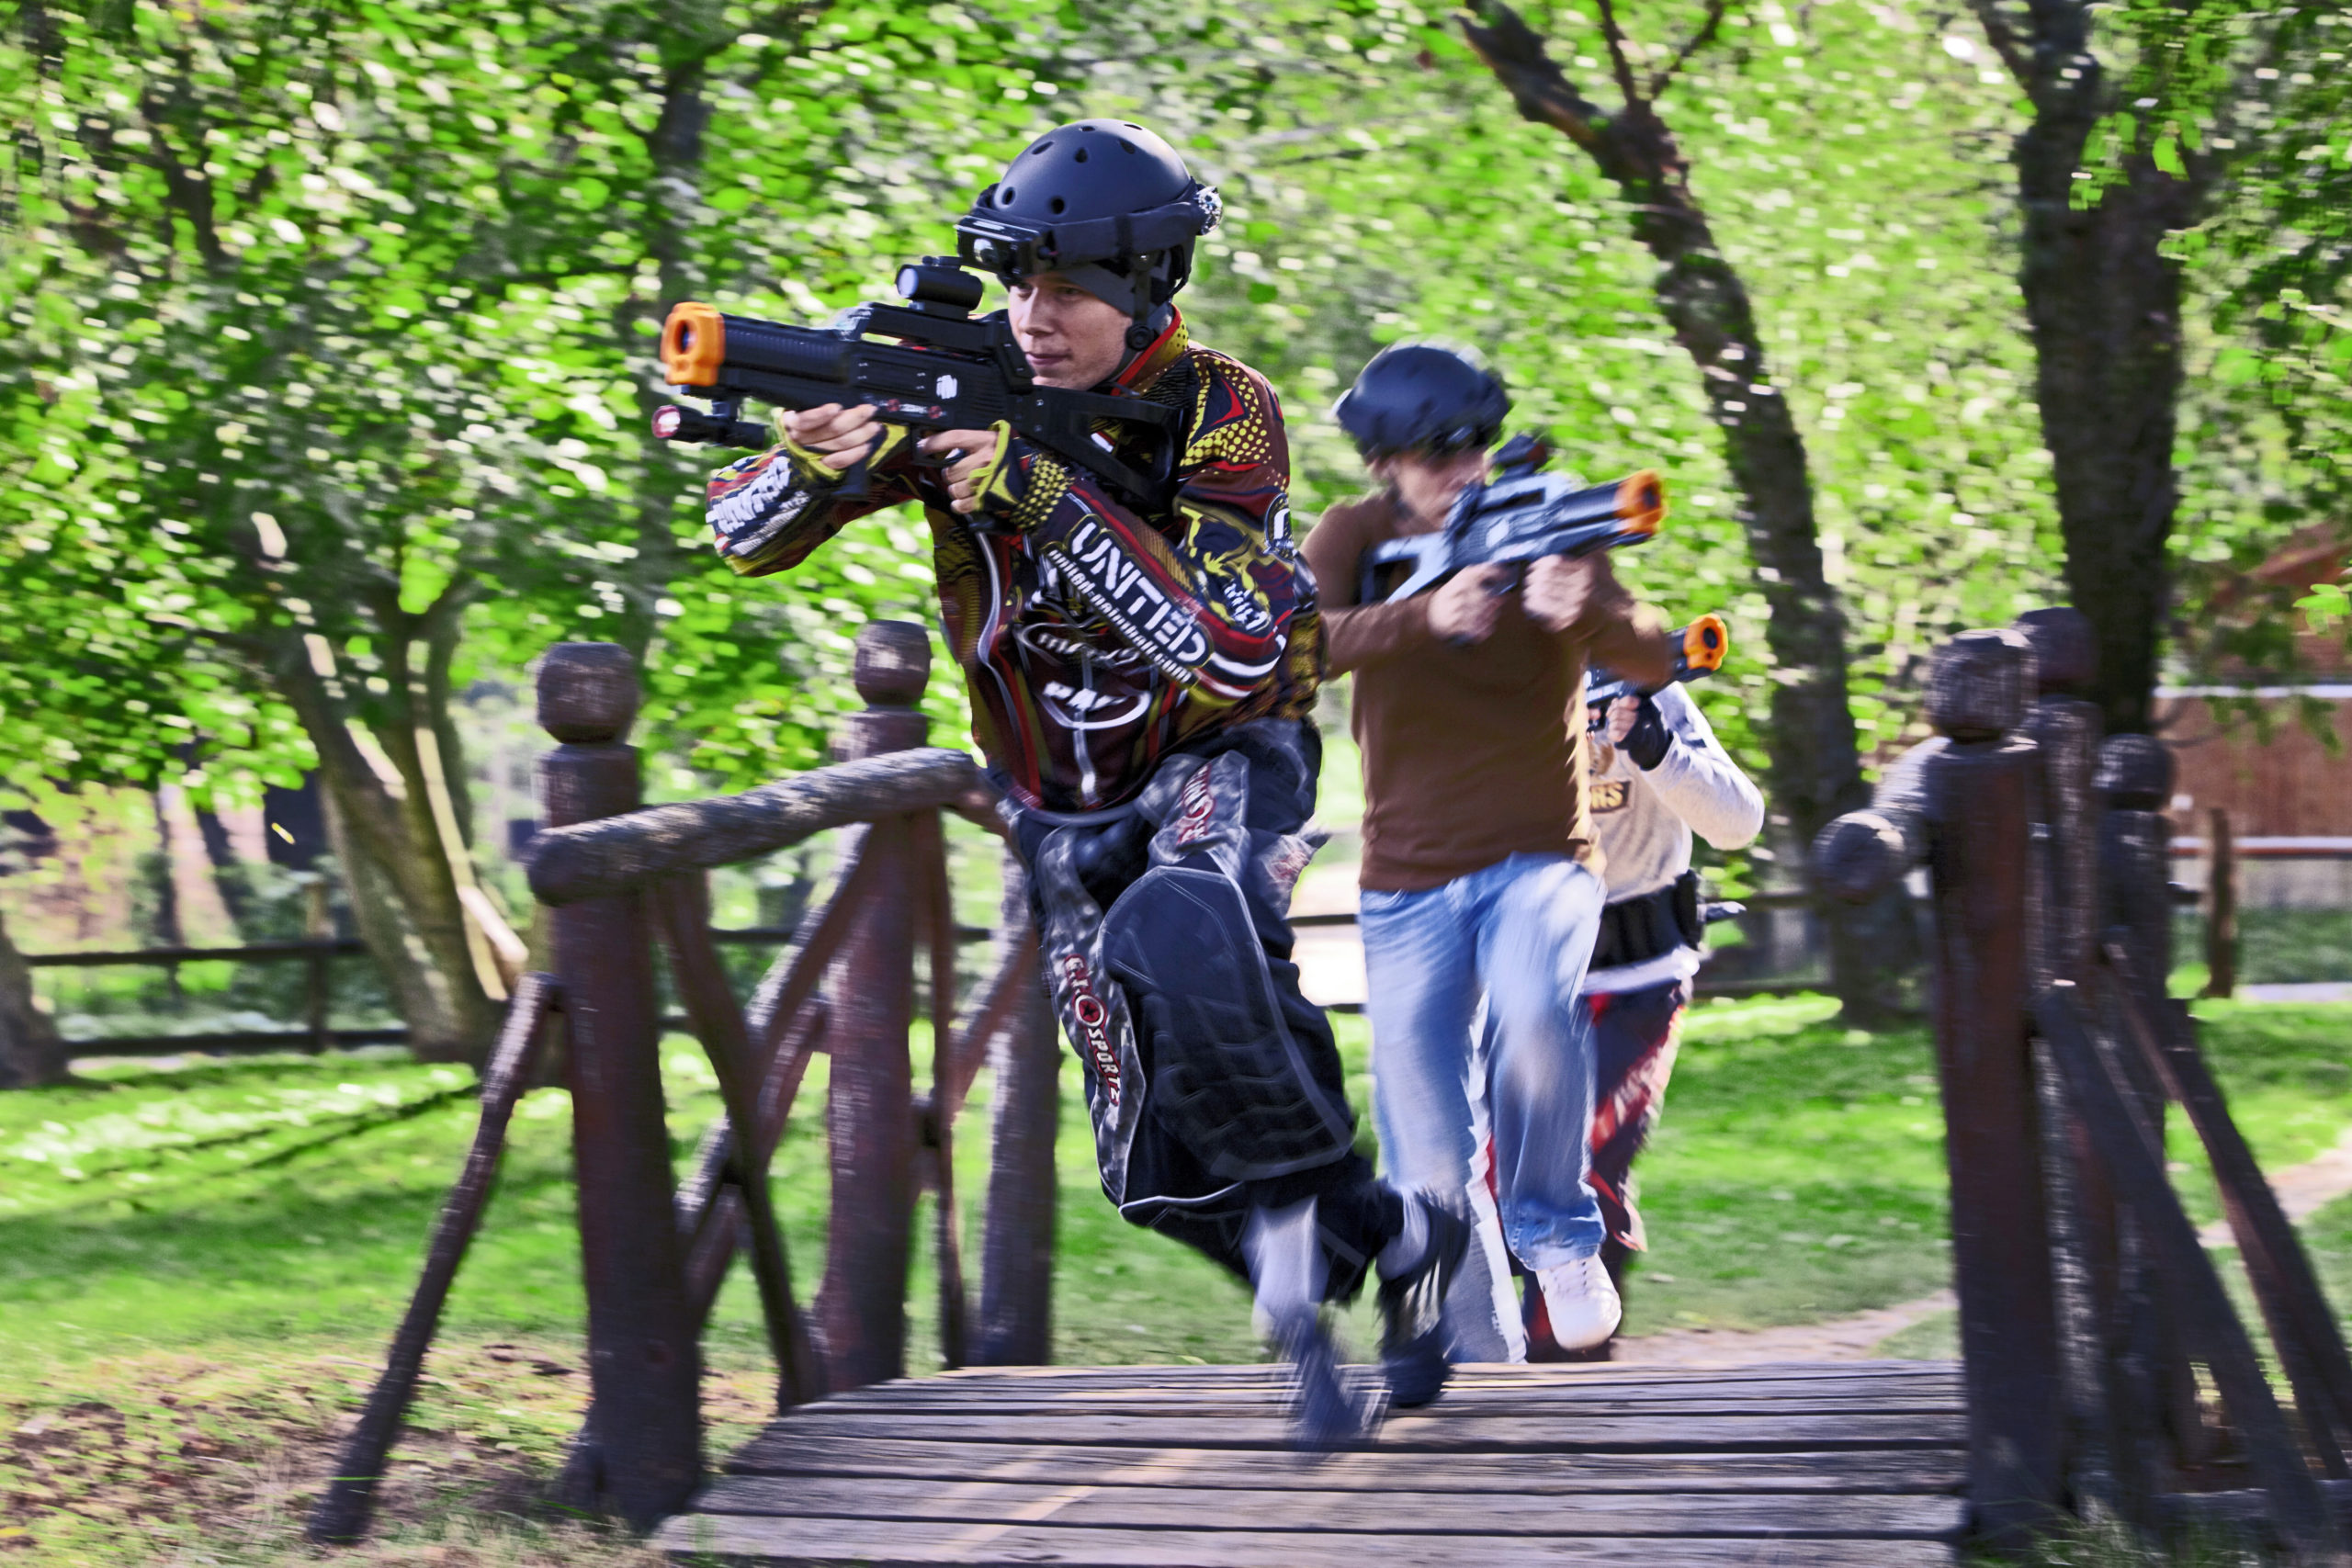 intager_lasertag_outdoor_007